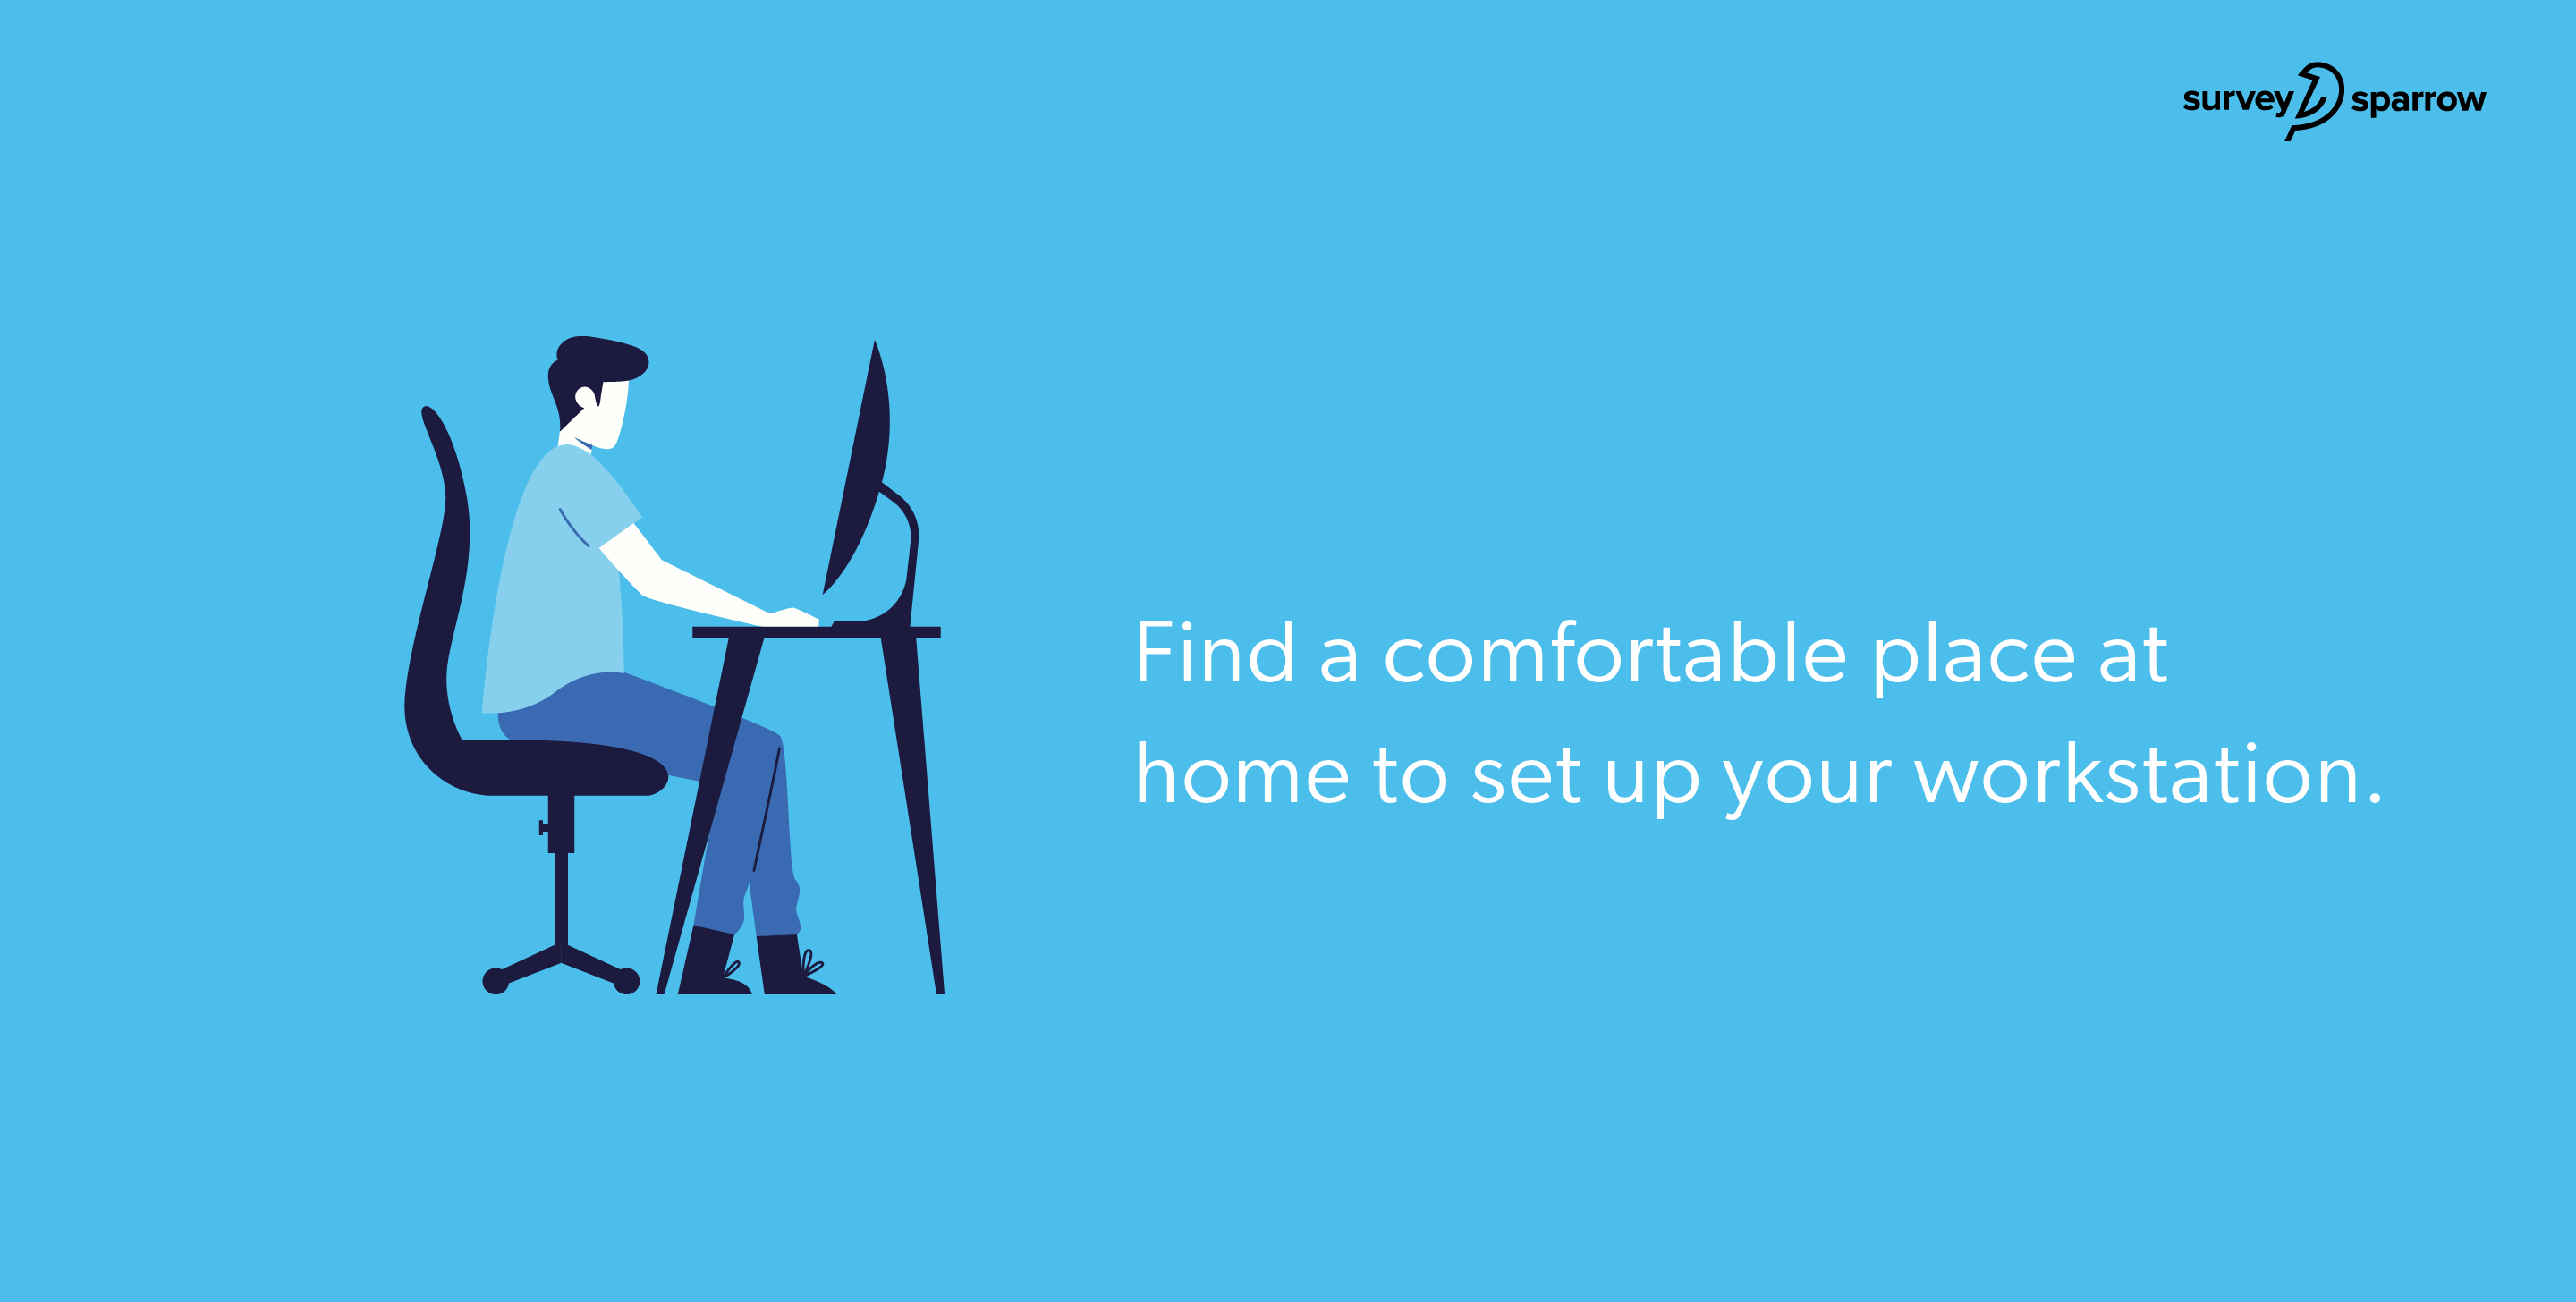 Find a comfortable place at home to set up your workstation.